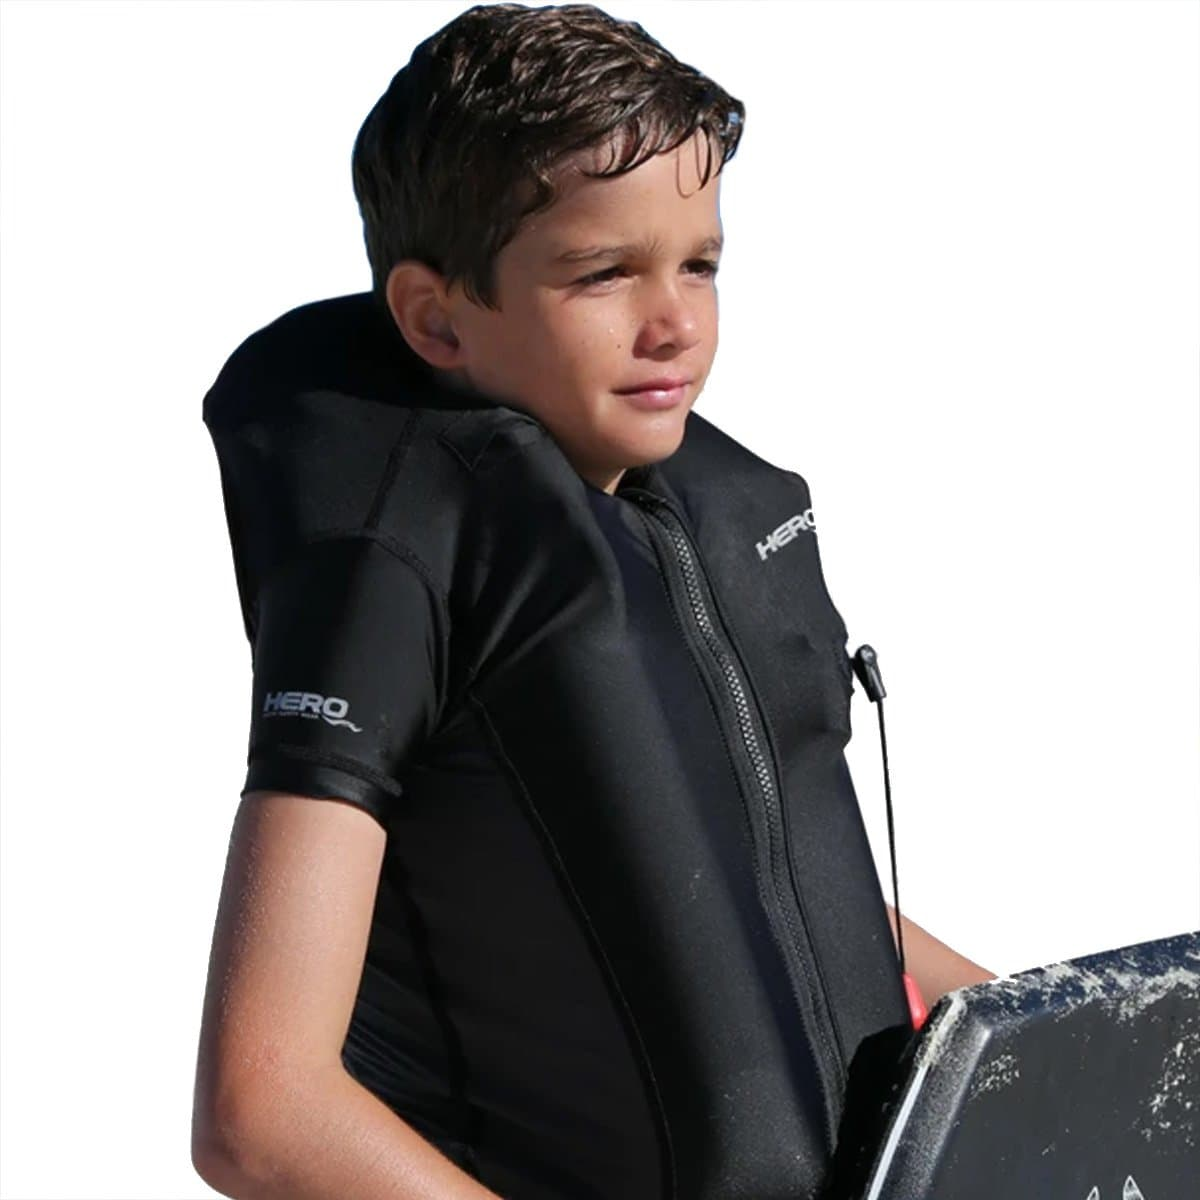 HERO Inflatable Life Jacket Rashguard - Child